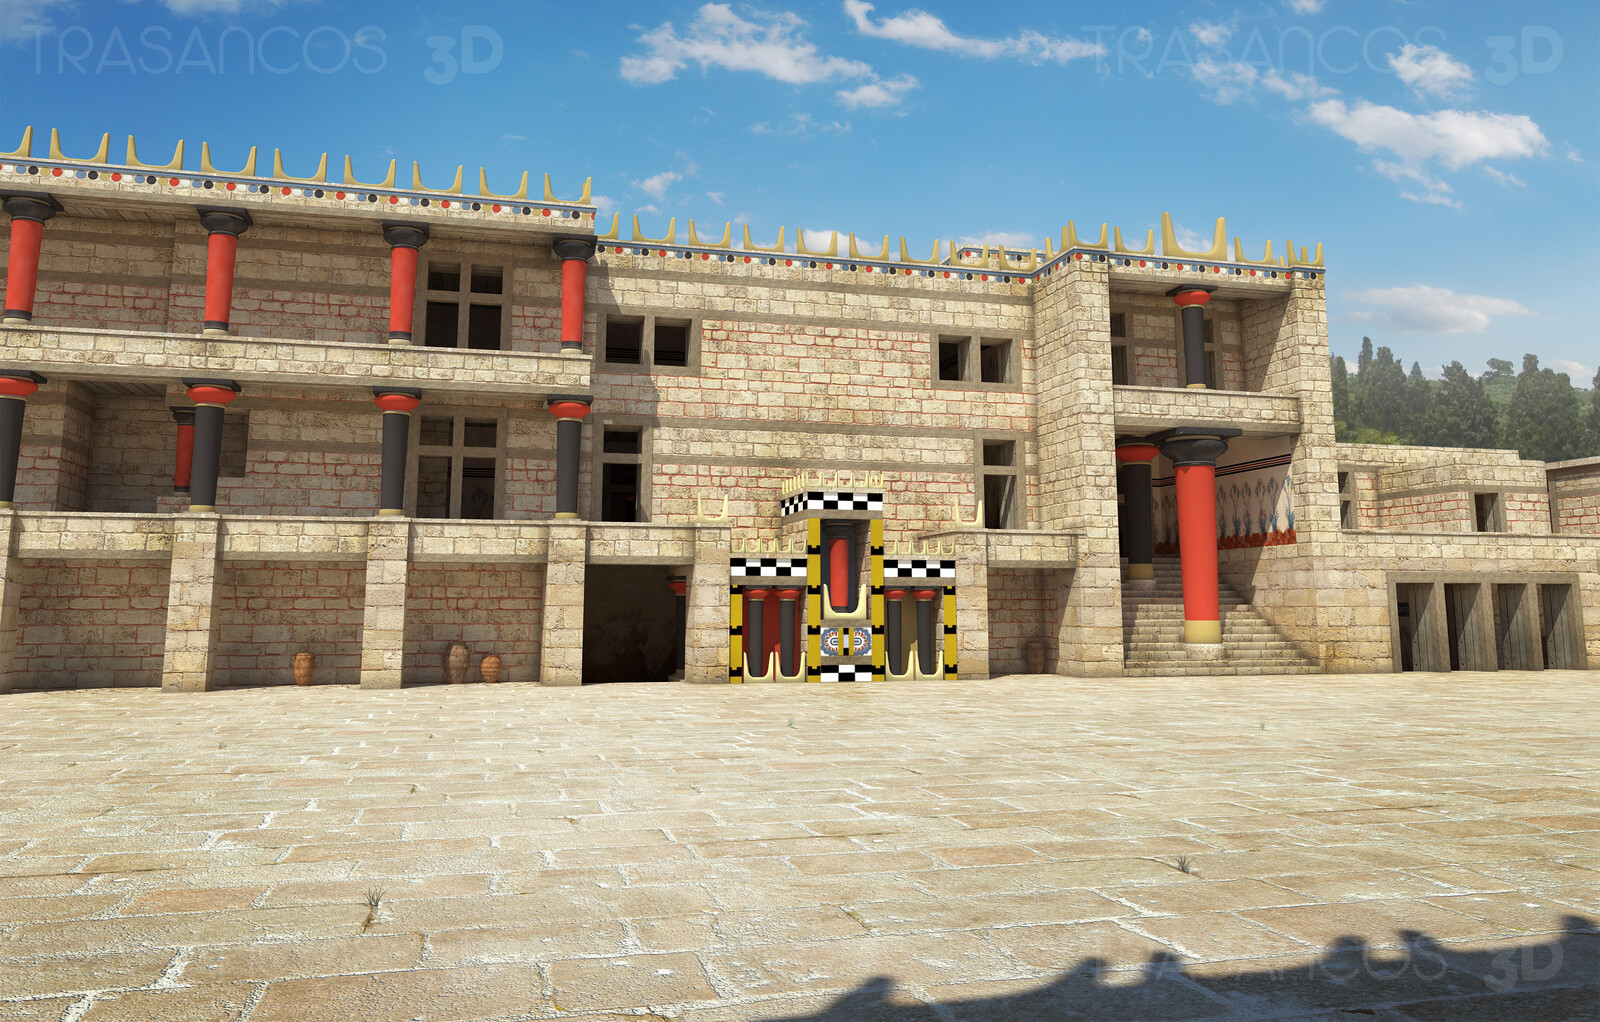 Reconstruction of the main patio of the Palace of Cnossos.